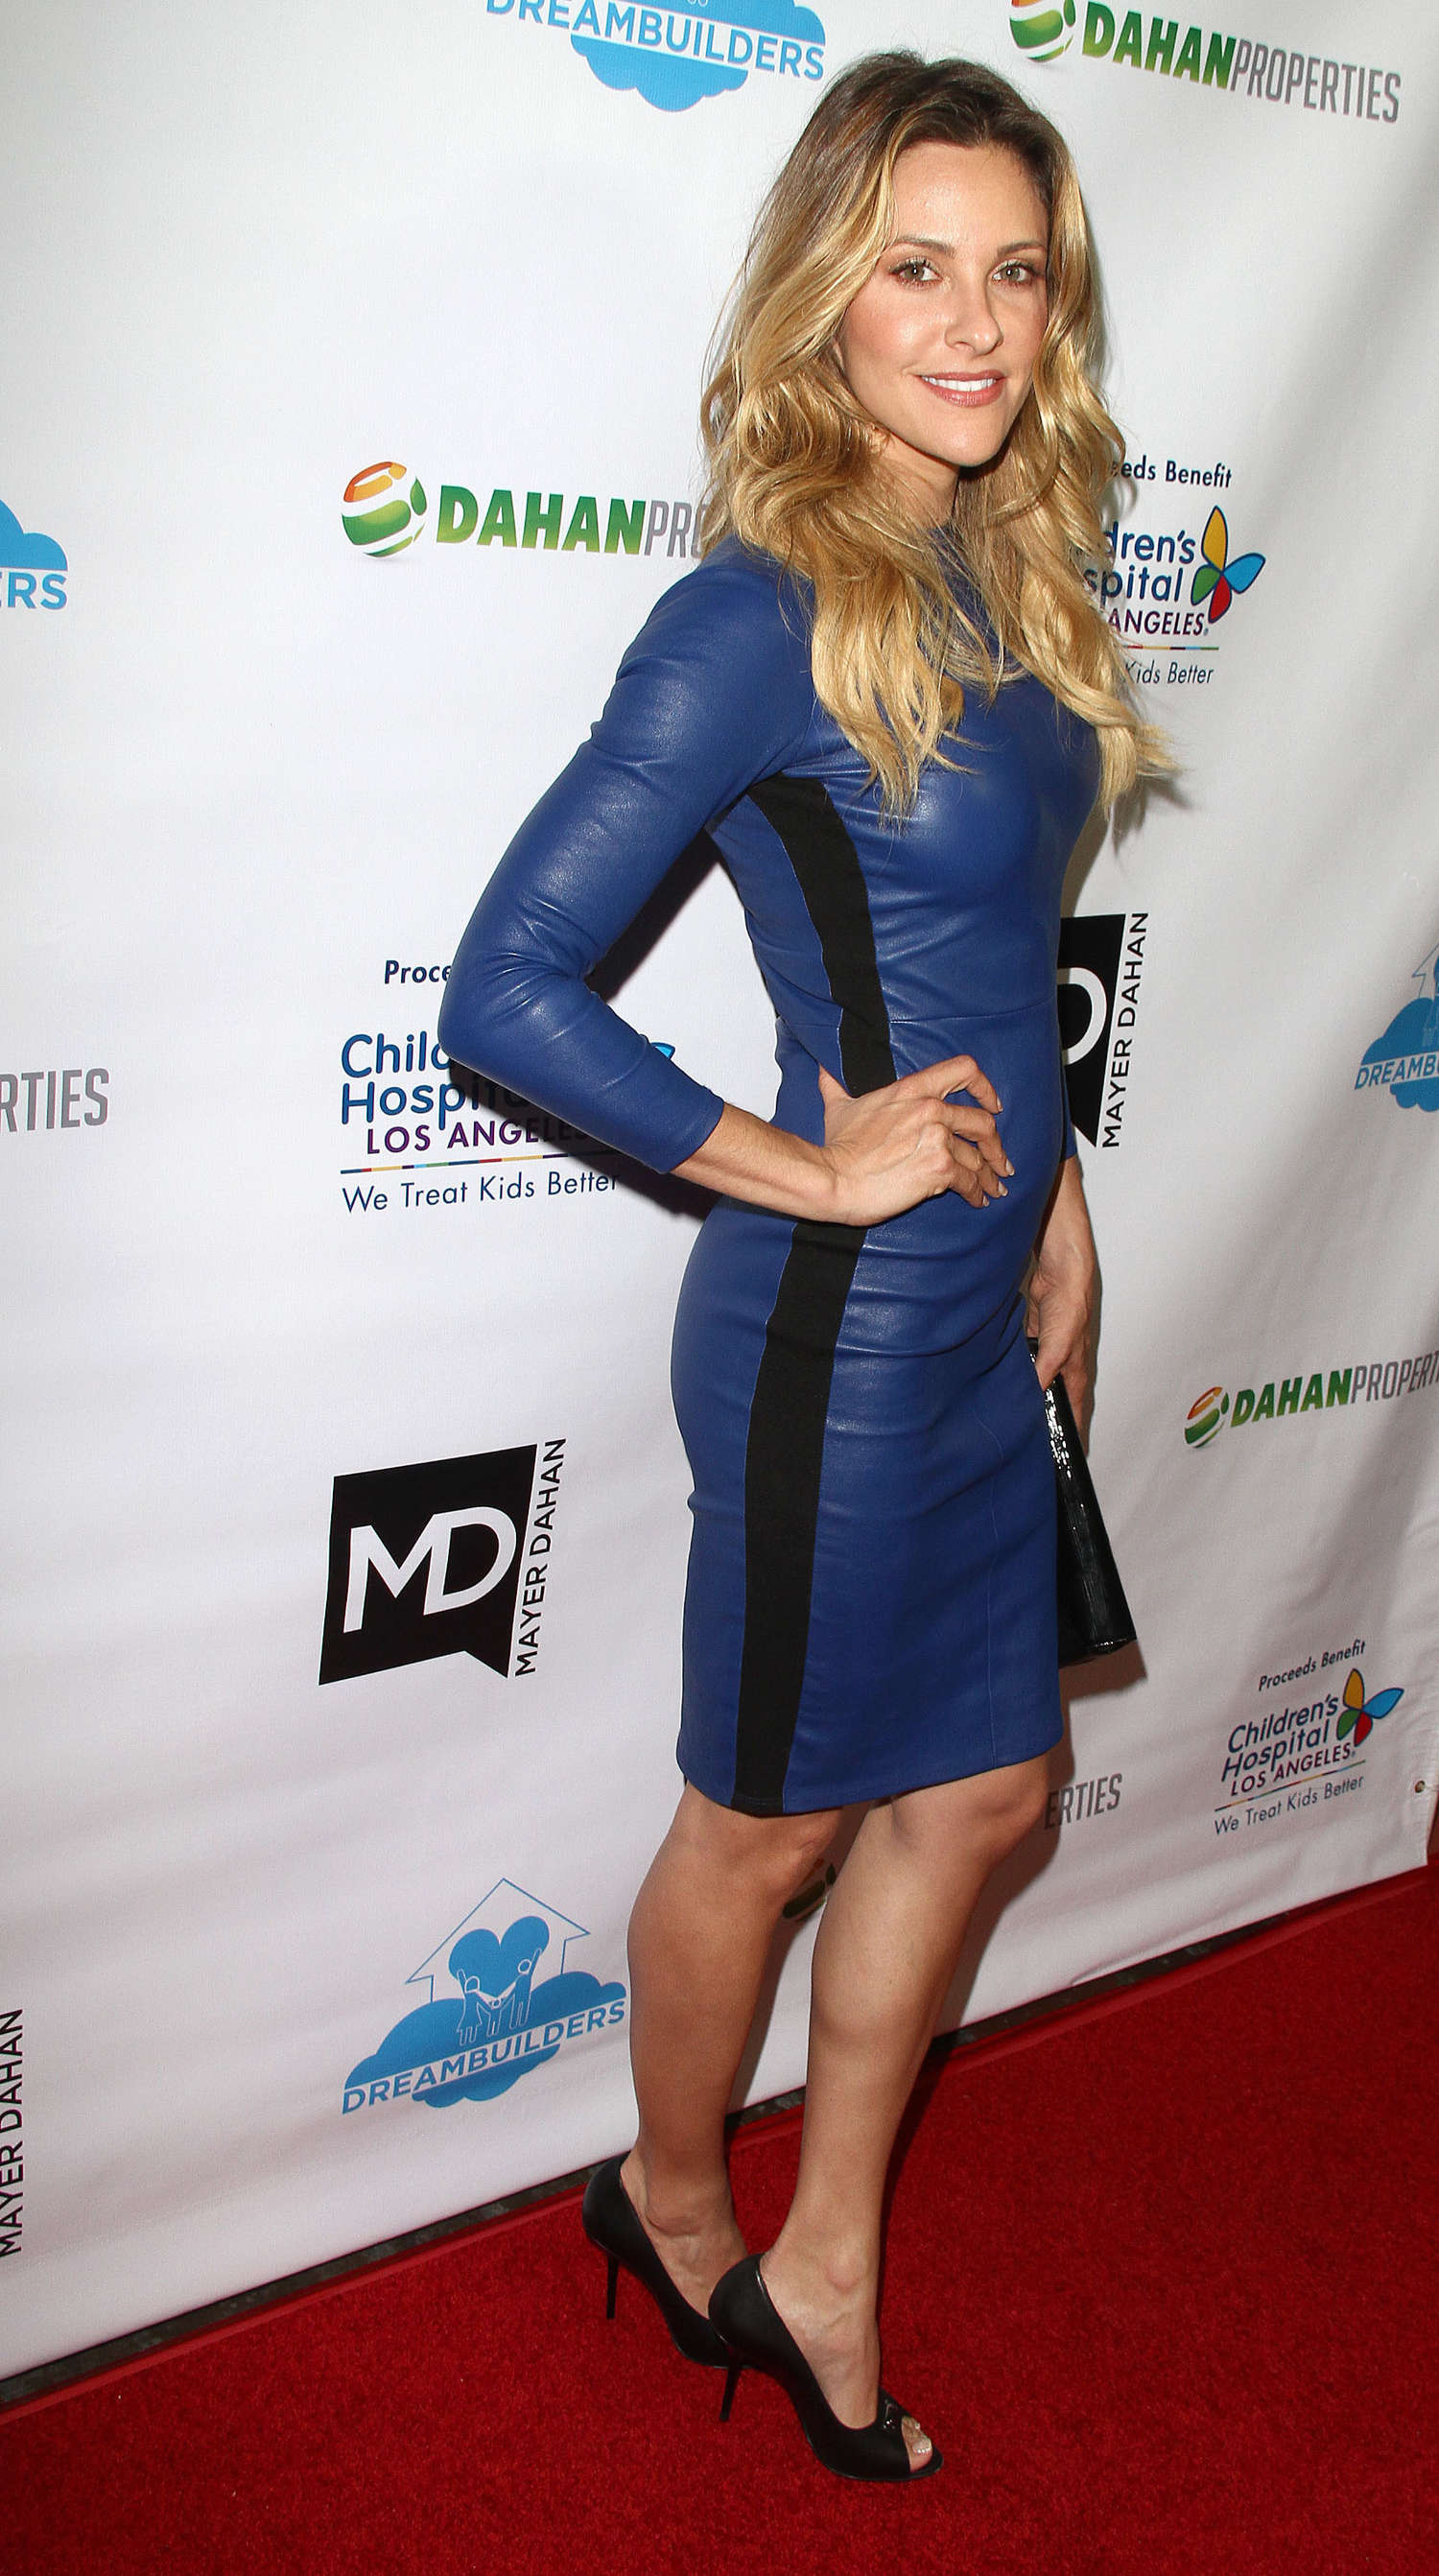 Jill Wagner at A Brighter Future For Children in Los Angeles